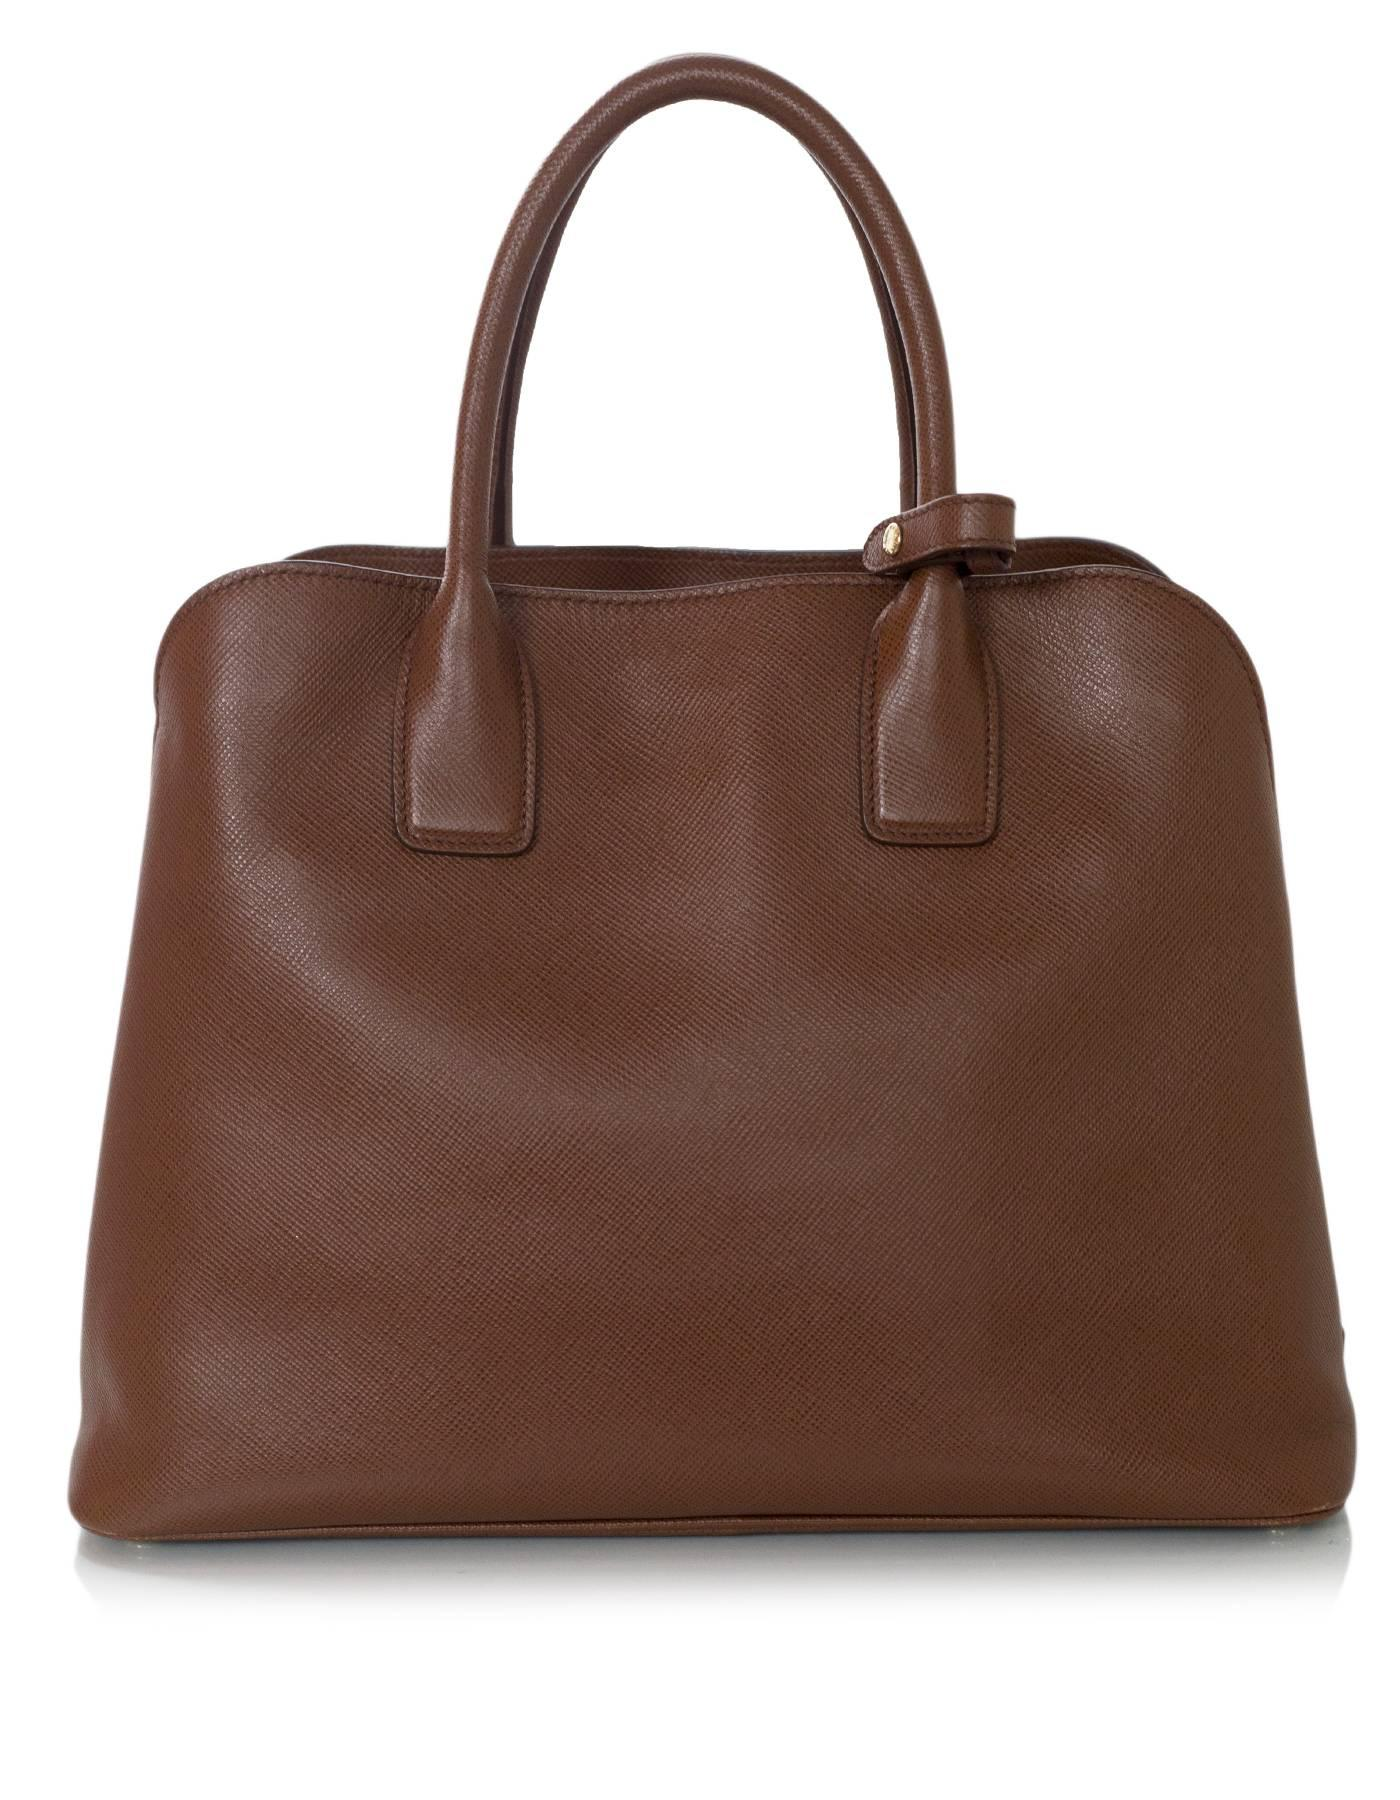 bb45a5b763 ... sale prada brown saffiano leather palissandro tote bag w strap for sale  1 3780f bf3ae